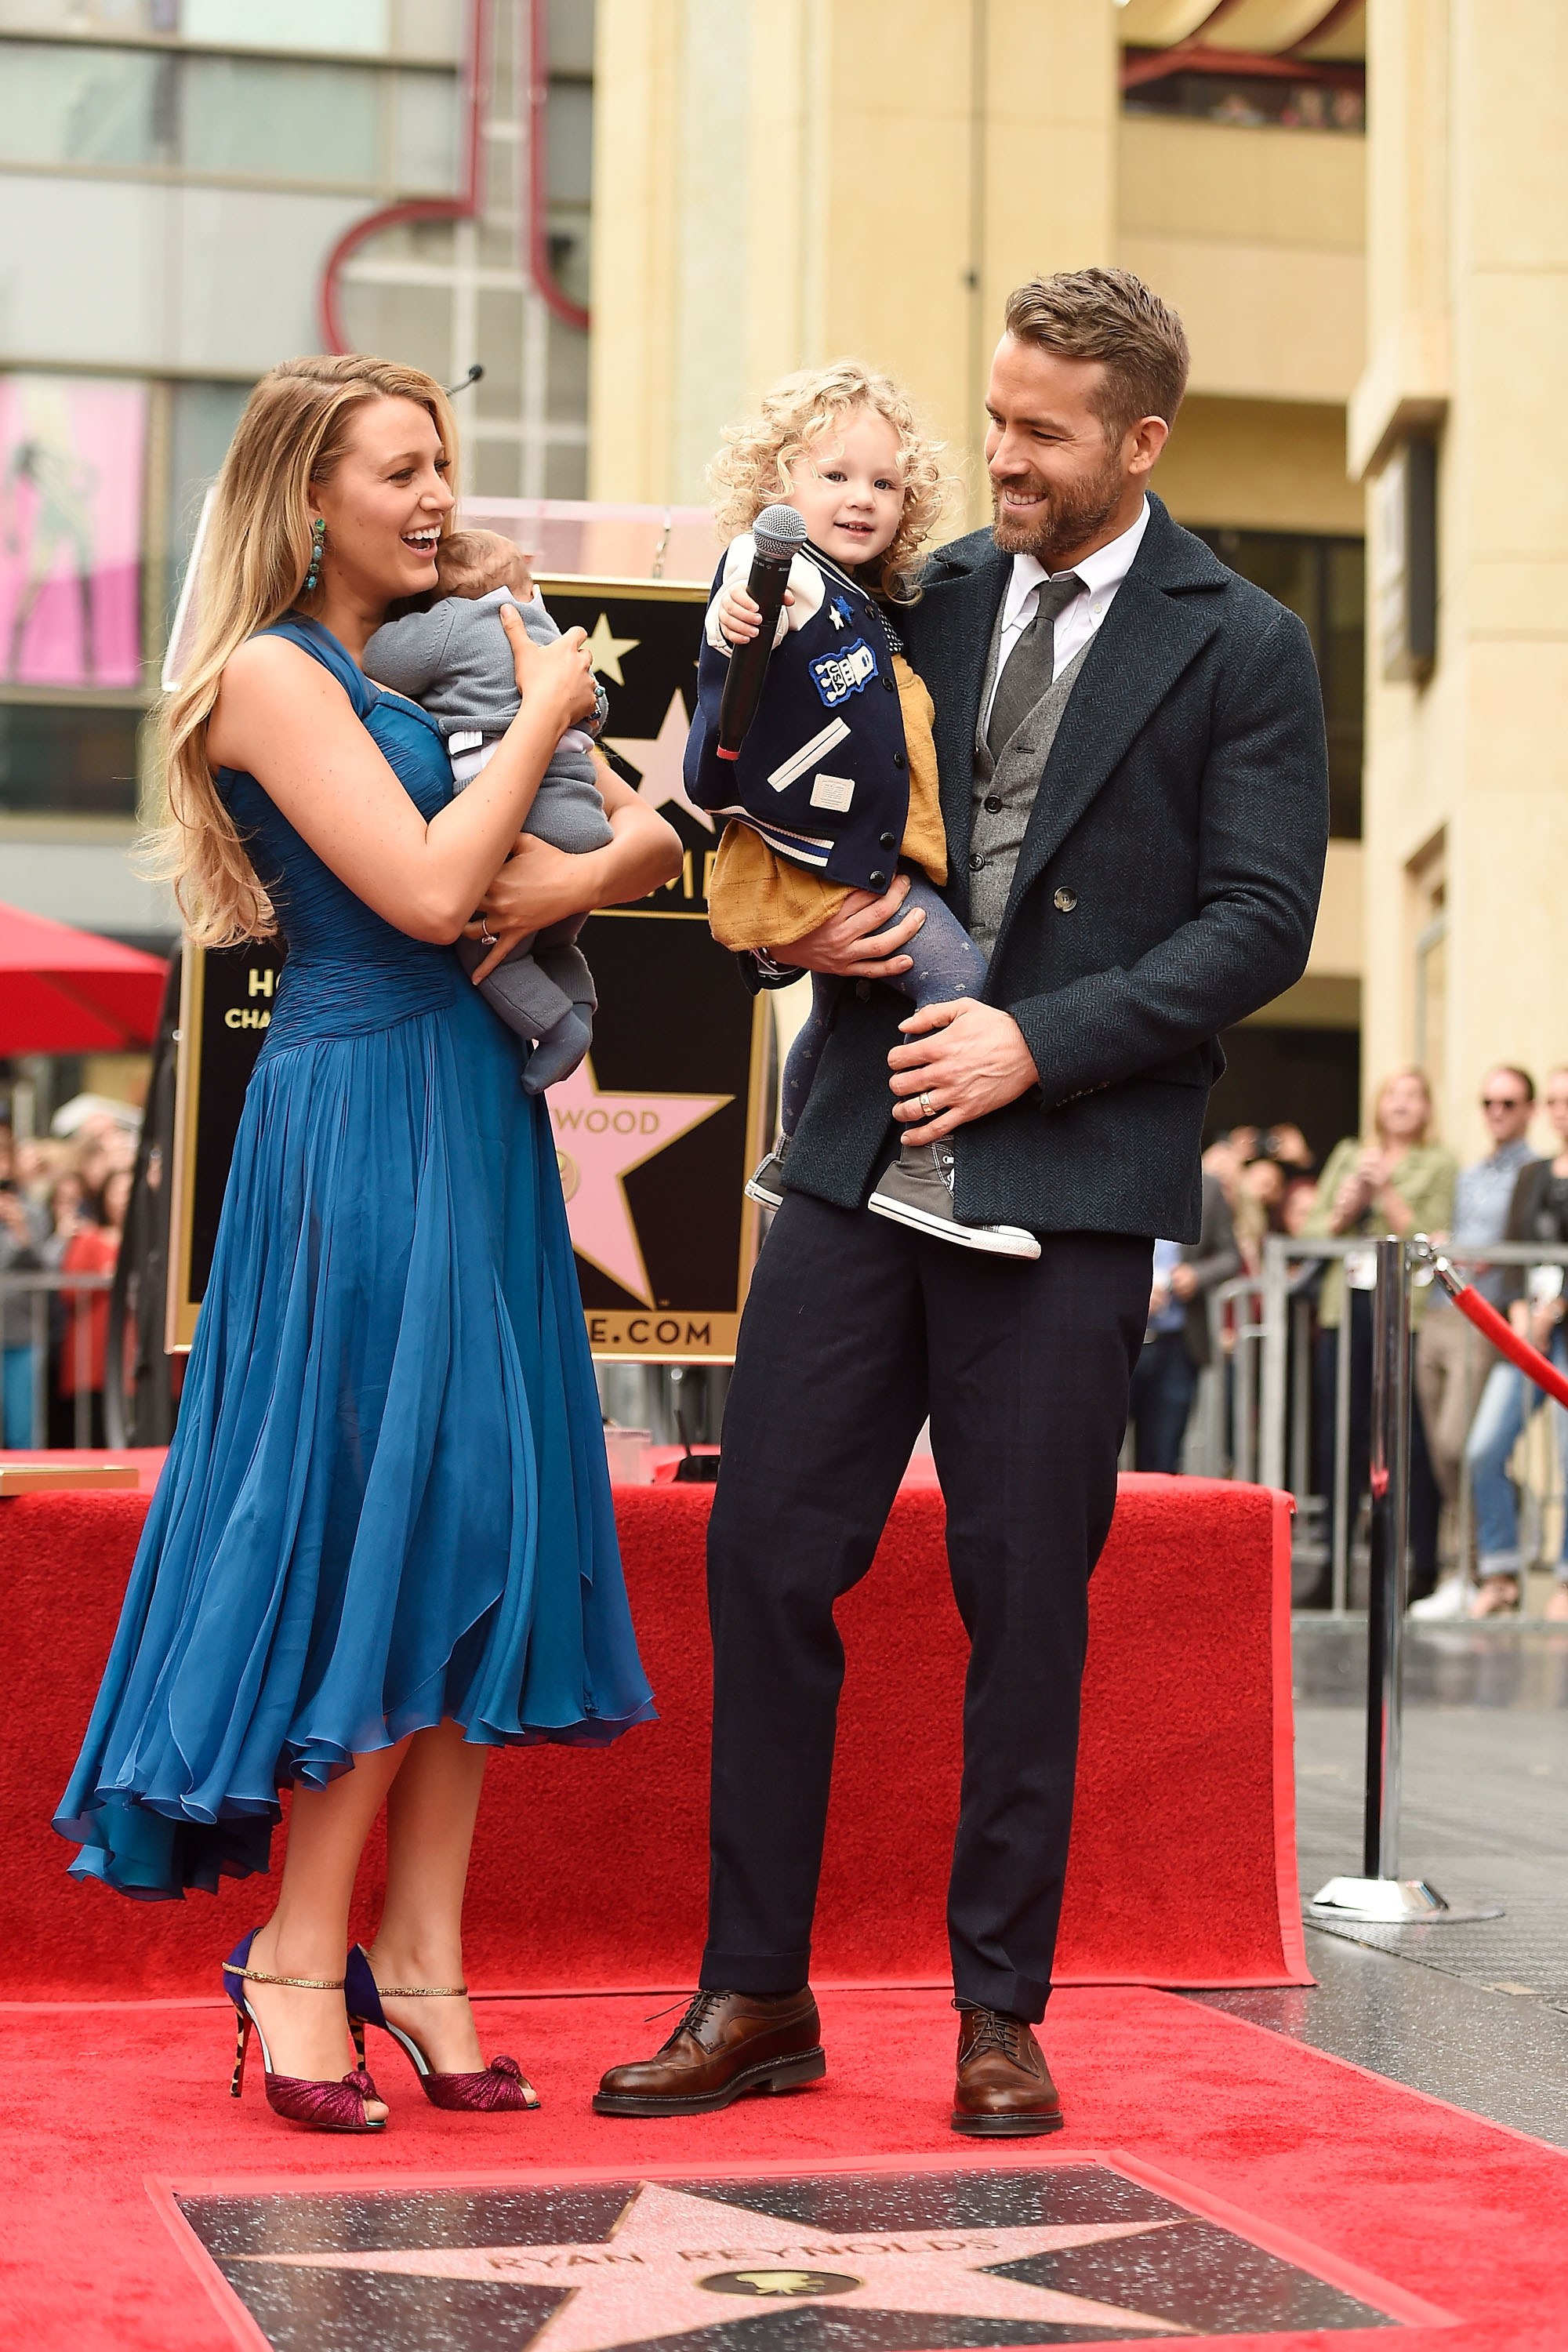 HOLLYWOOD, CA - DECEMBER 15:   Actors Blake Lively (L) and Ryan Reynolds pose with their daughters as Ryan Reynolds is honored with star on the Hollywood Walk of Fame on December 15, 2016 in Hollywood, California.  (Photo by Matt Winkelmeyer/Getty Images)